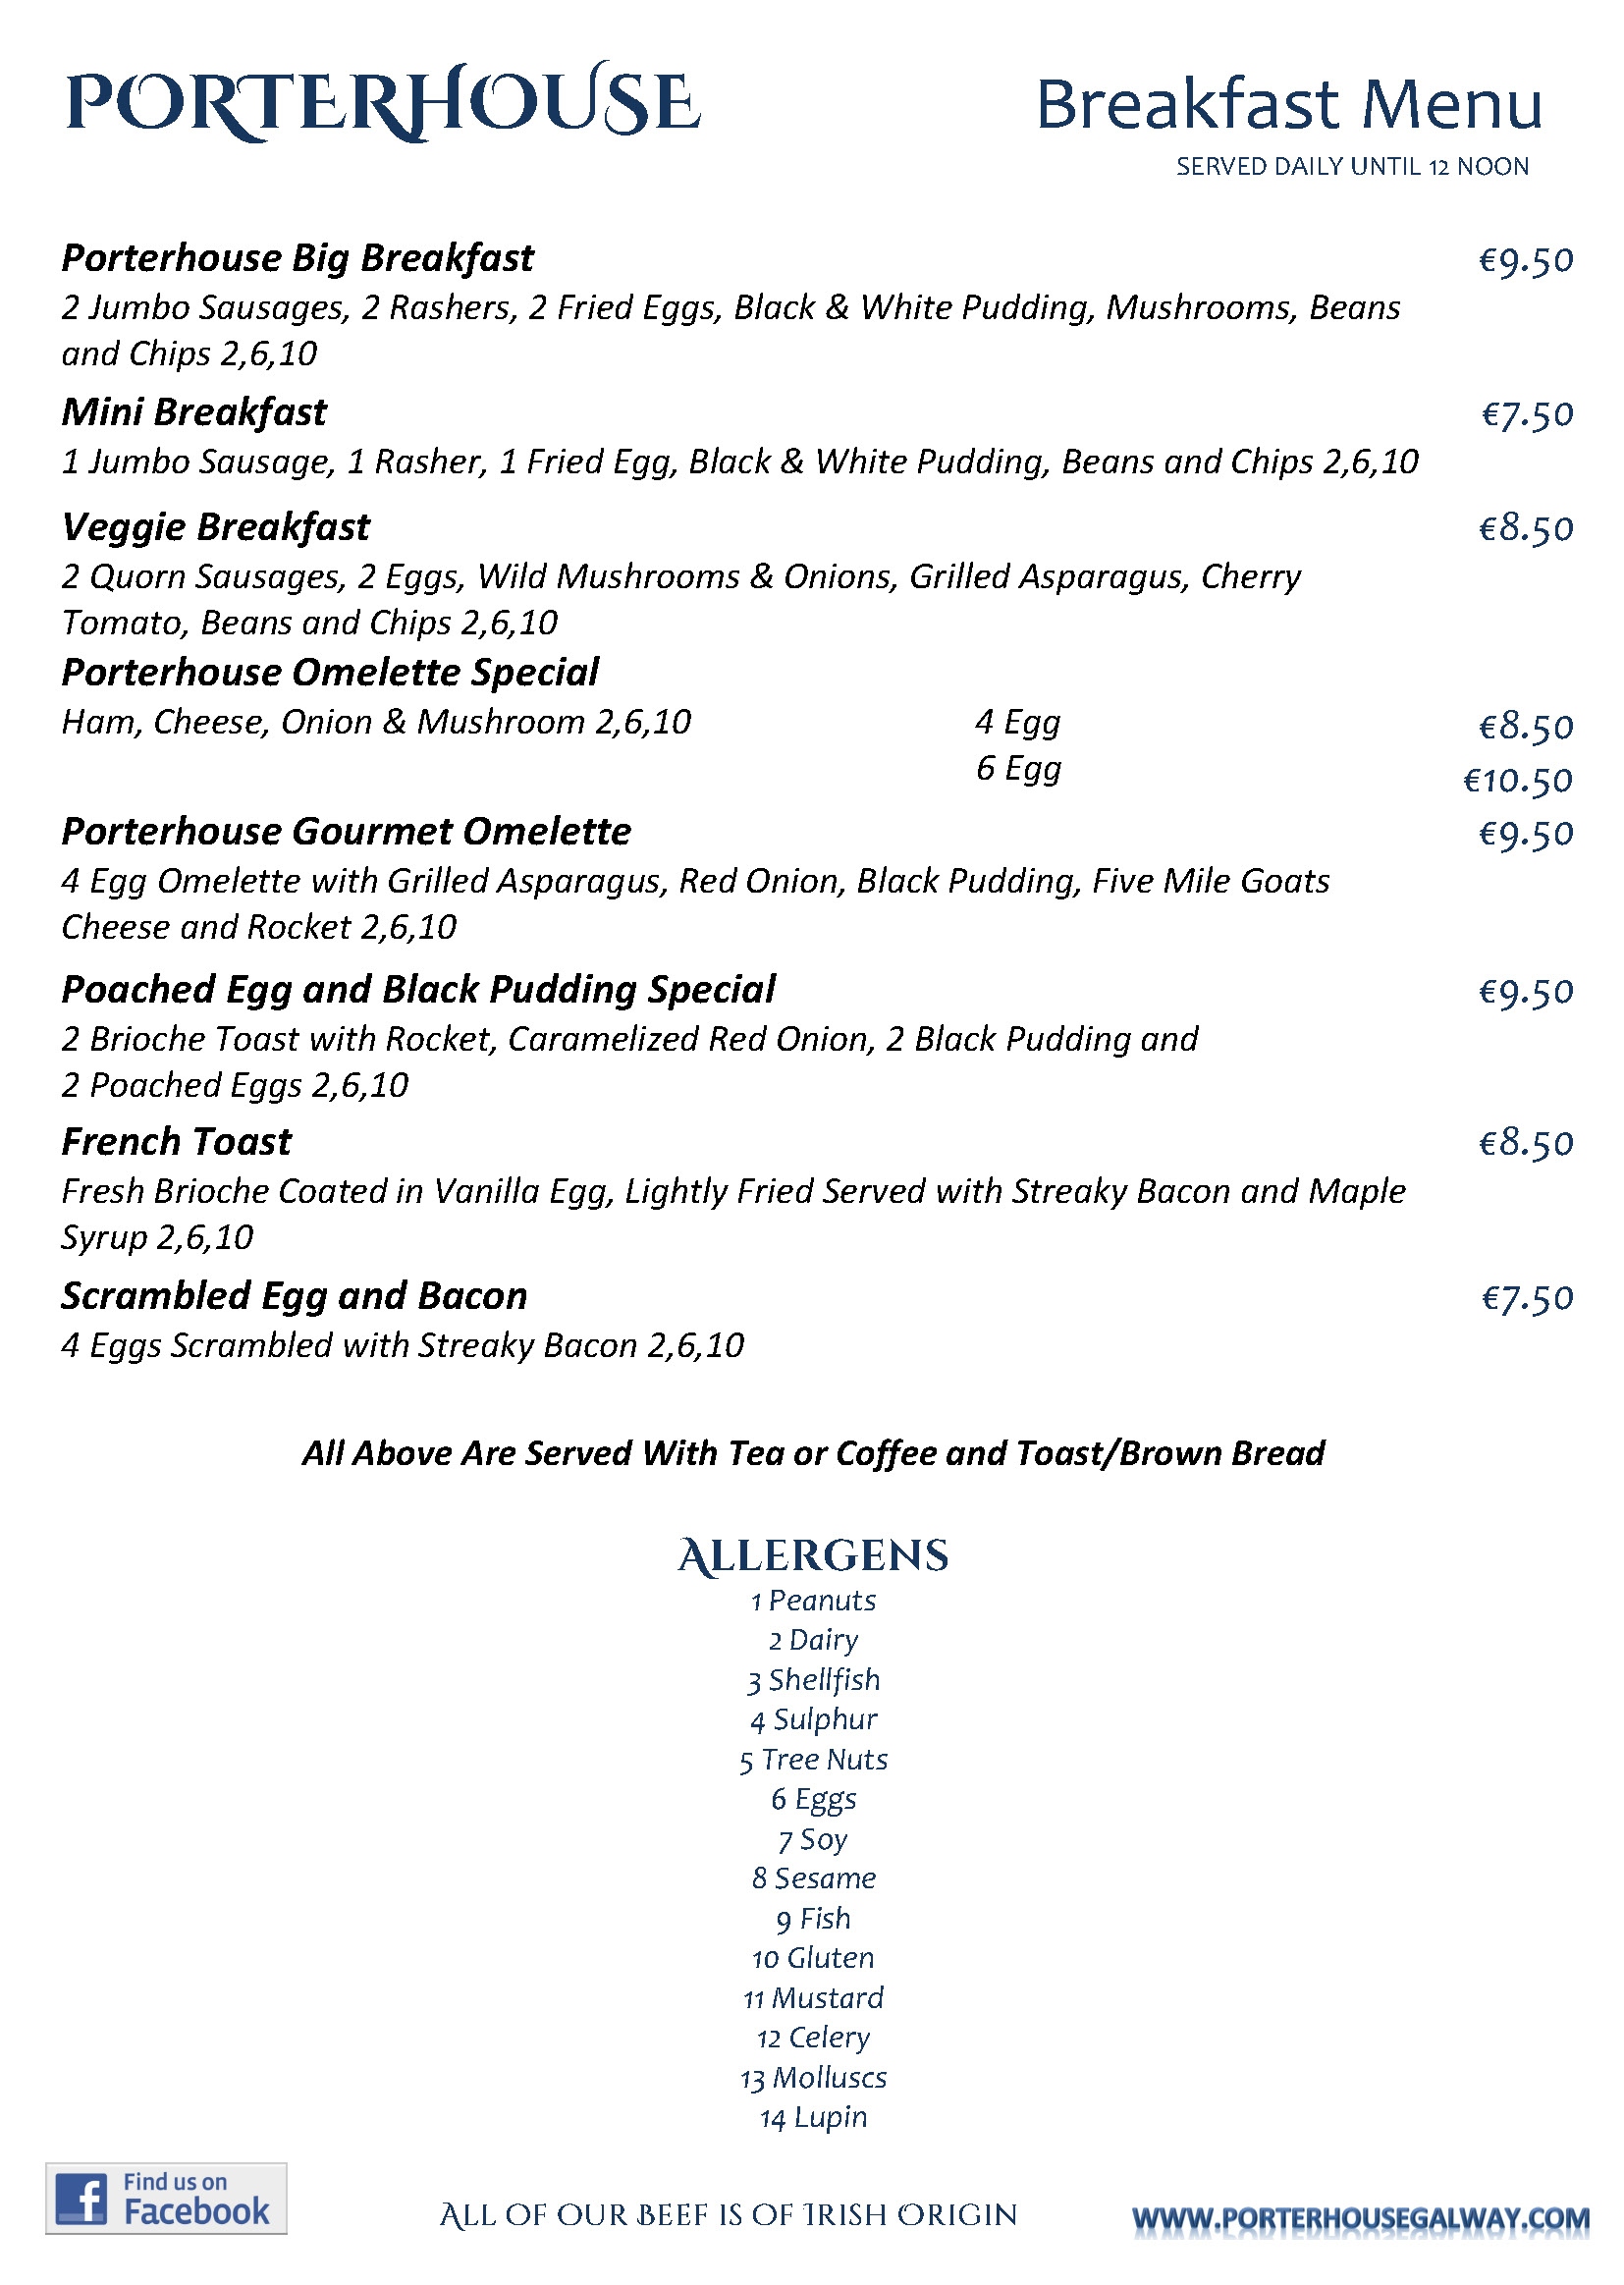 Porterhouse Galway - Breakfast Menu - Final 19.07.2018.jpg